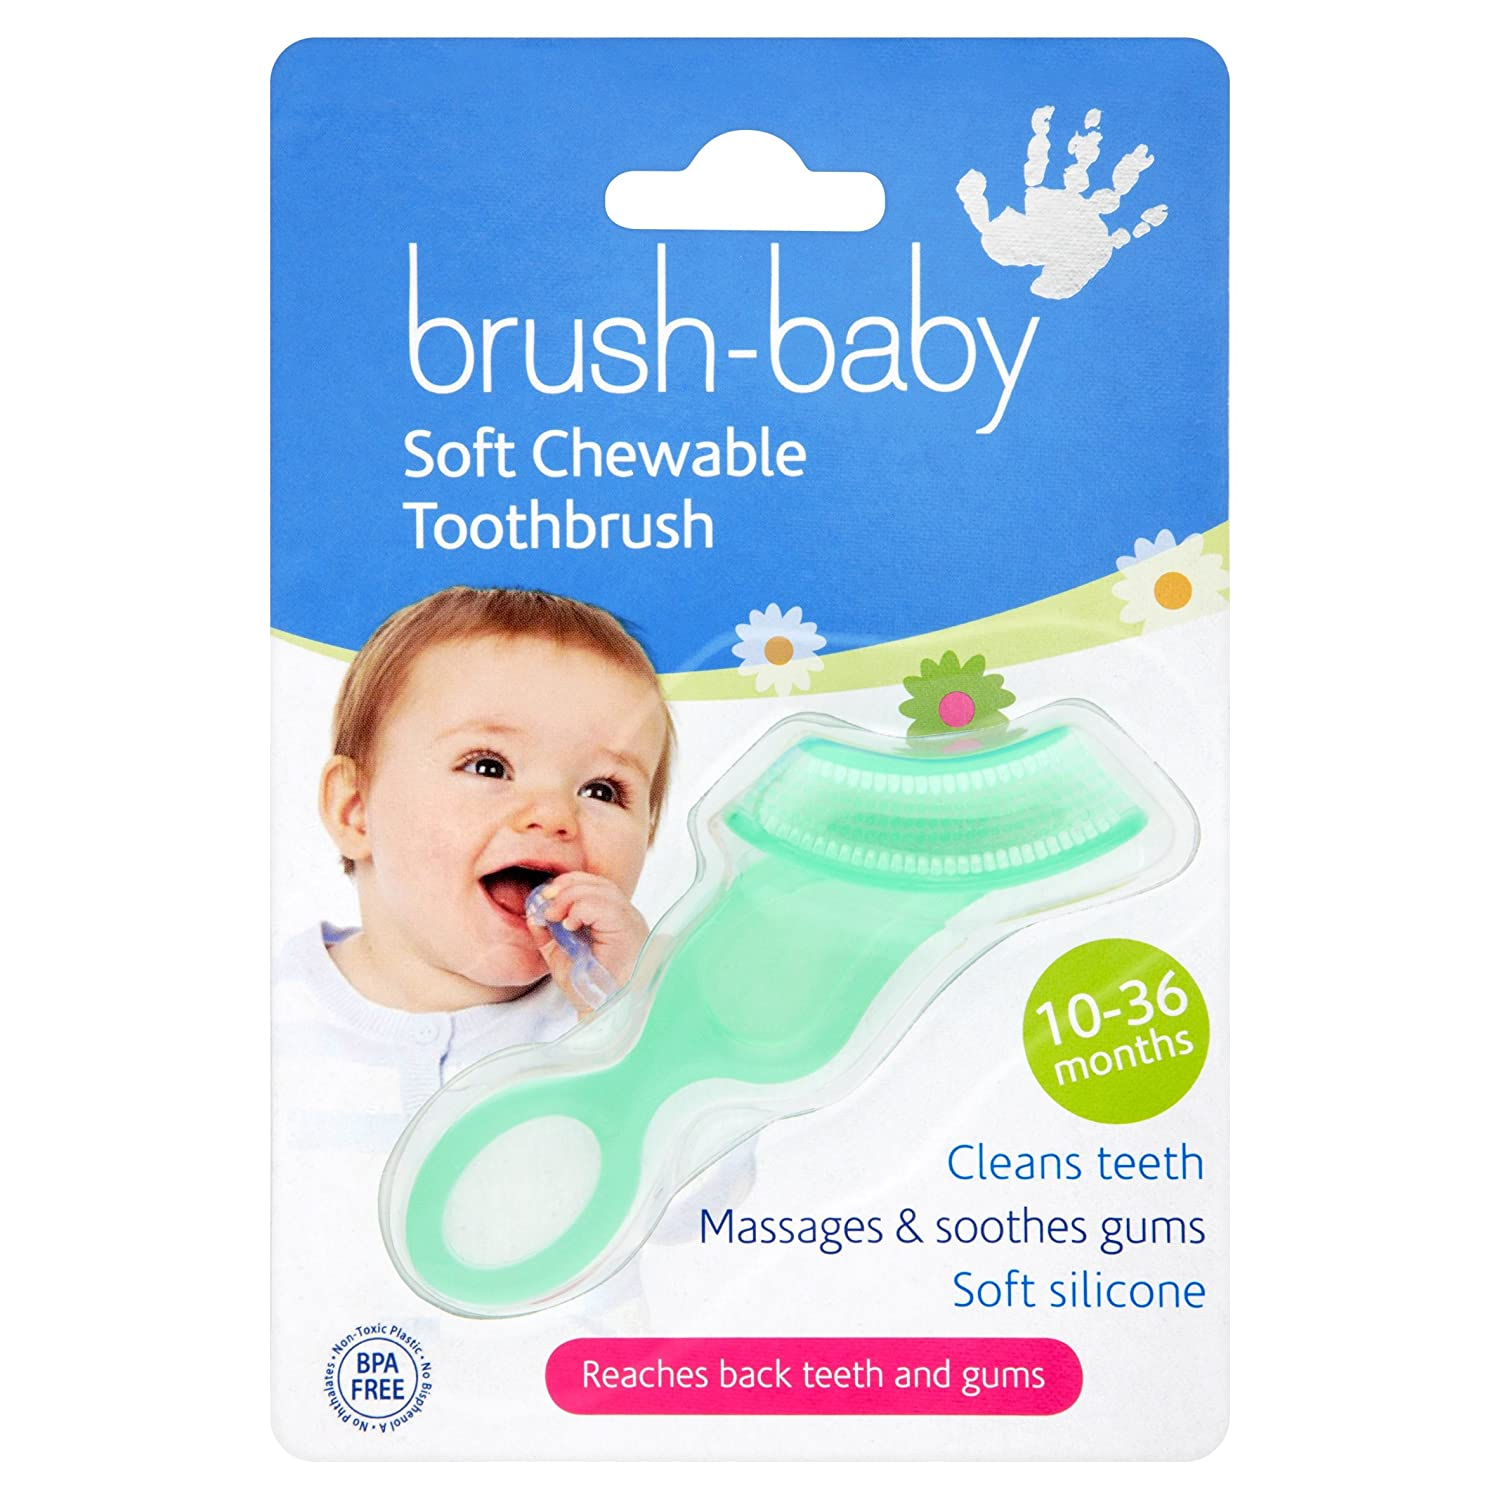 Brush-Baby Chewable Toothbrush (Blue) Brushbaby Ltd 112